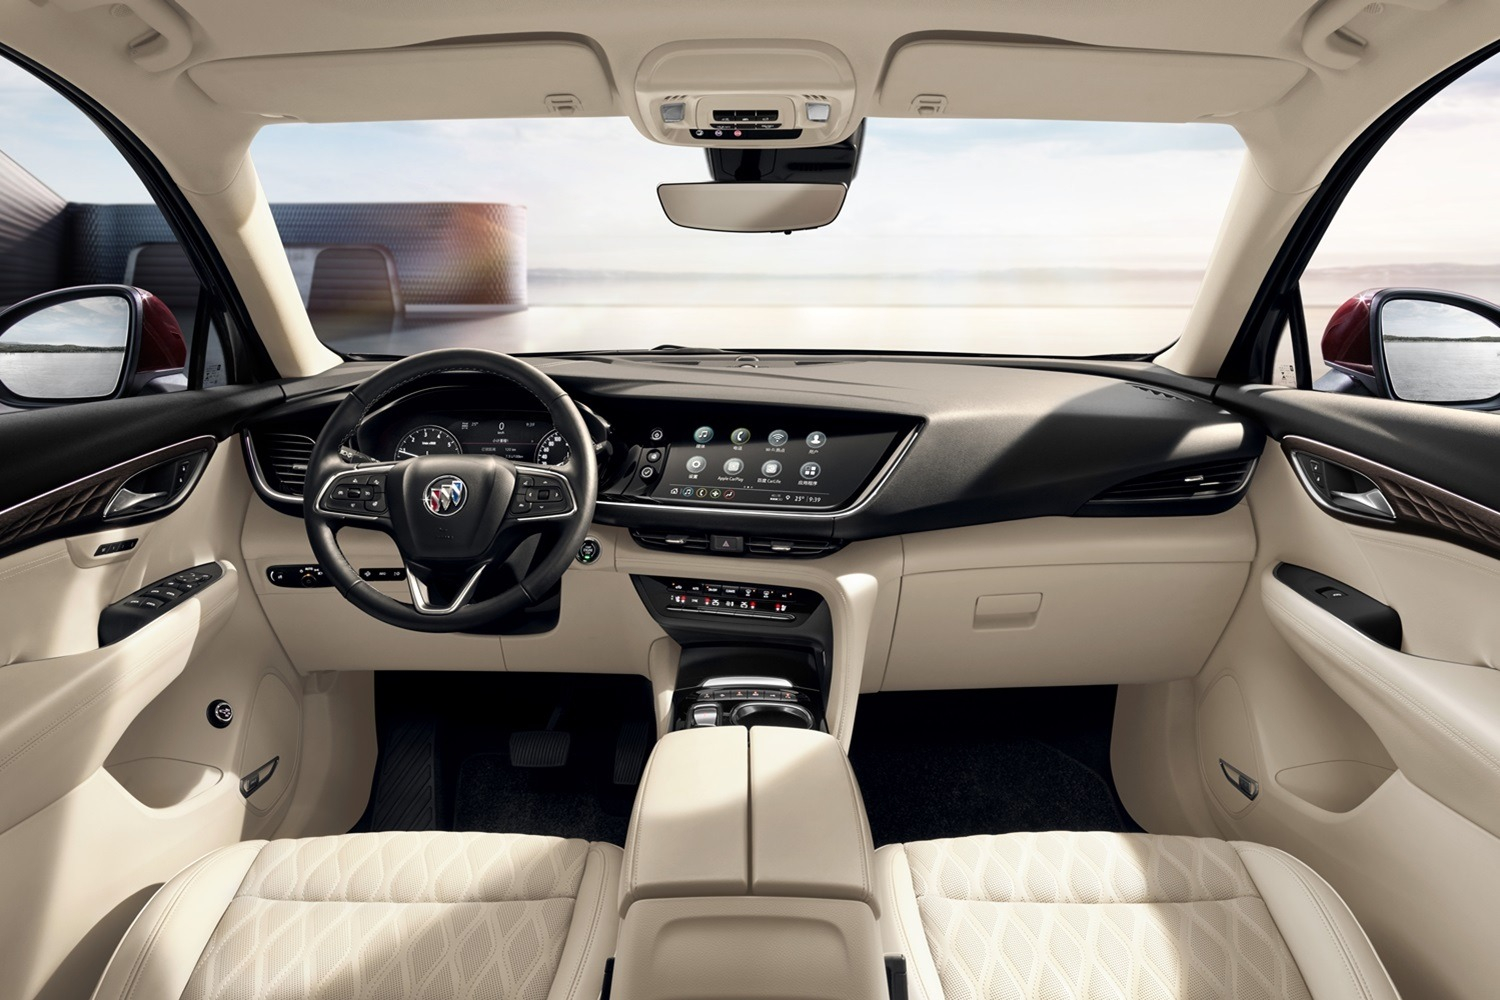 2021 Buick Envision Interior Revealed In Brand New Photos New 2022 Buick Riviera Interior, History, Headlights